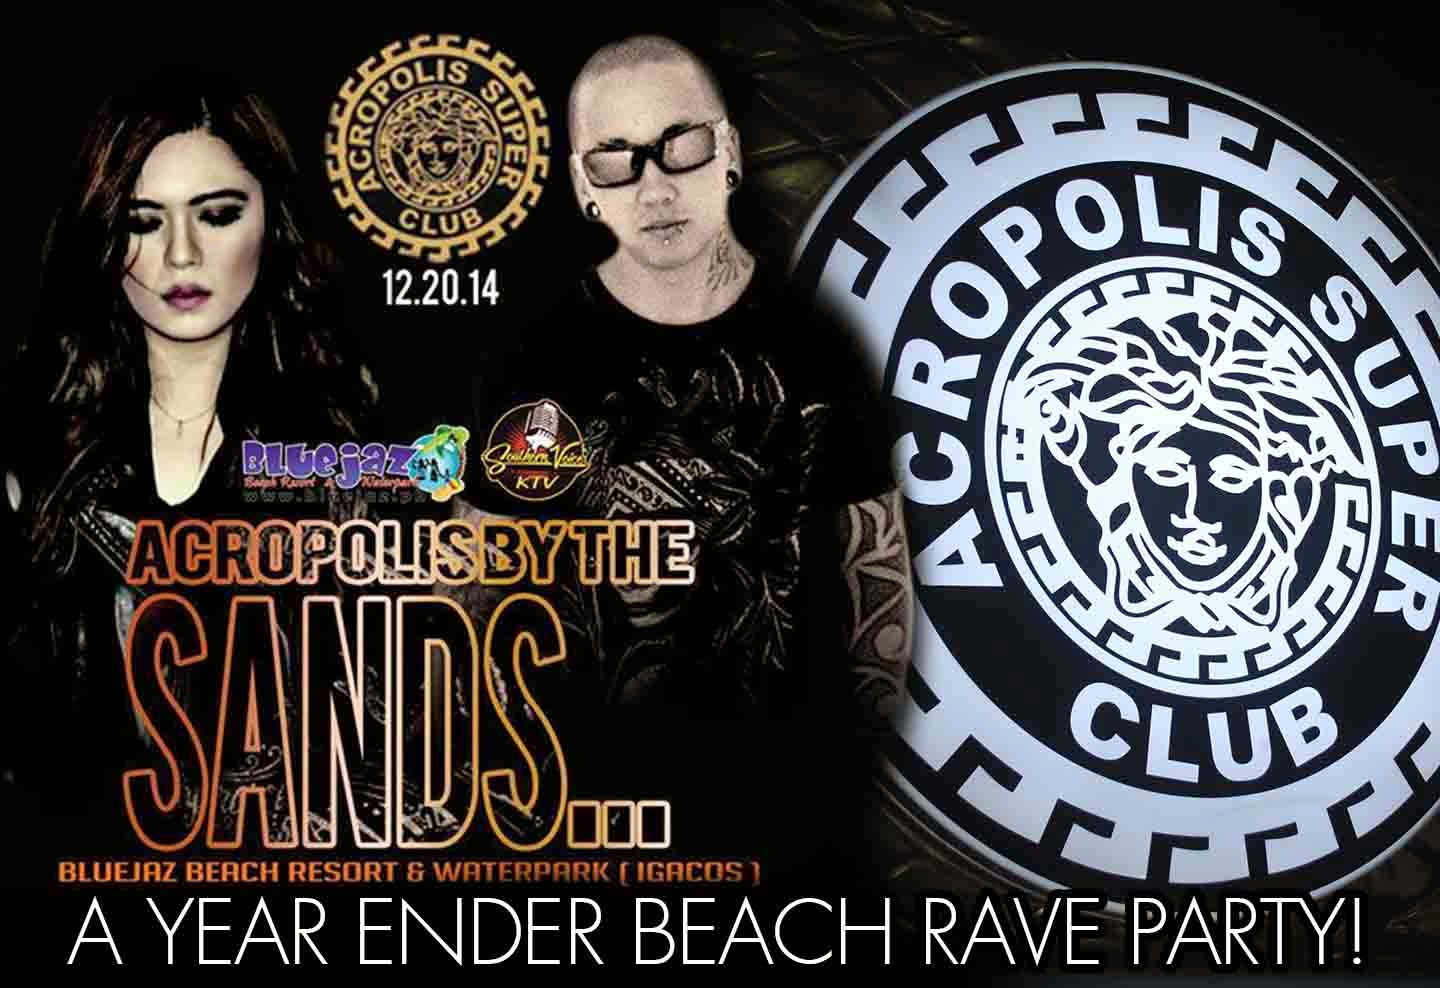 Acropolis Super Club Beach Rave Party at Blue Jazz Resort - Davao Region Philippines